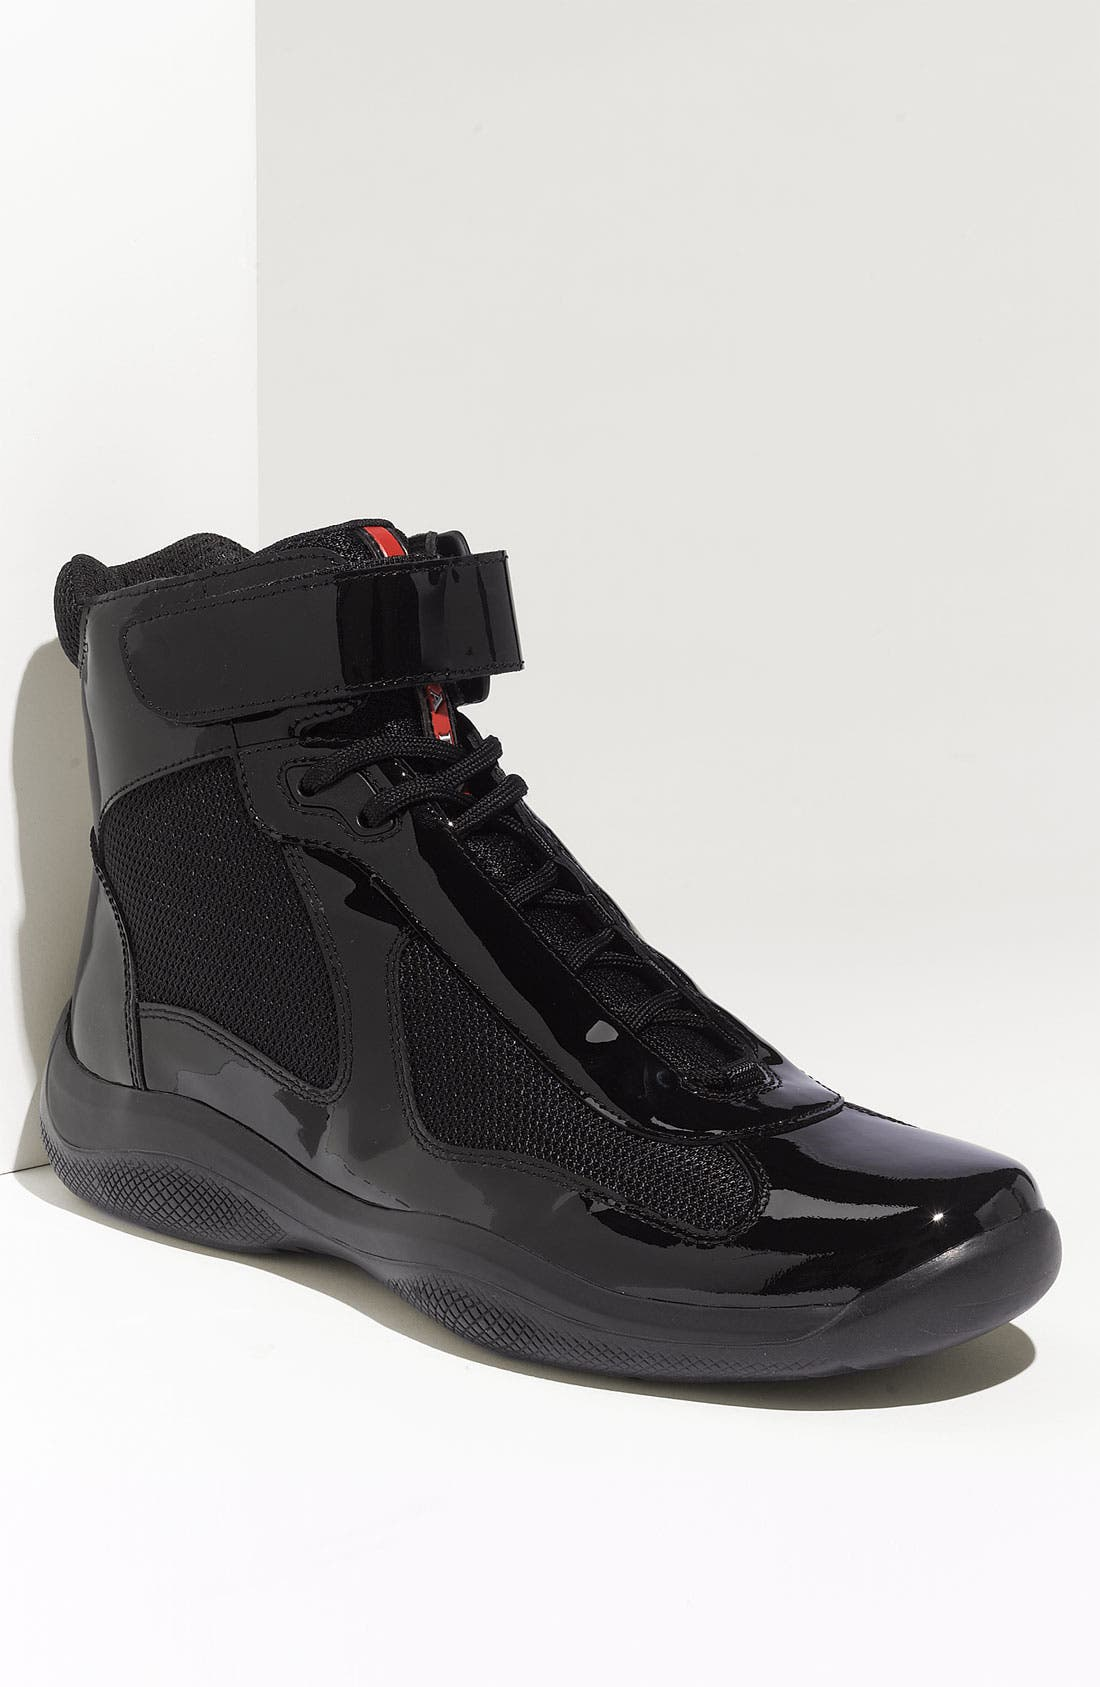 Main Image - Prada 'America's Cup' High Top Sneaker (Men)